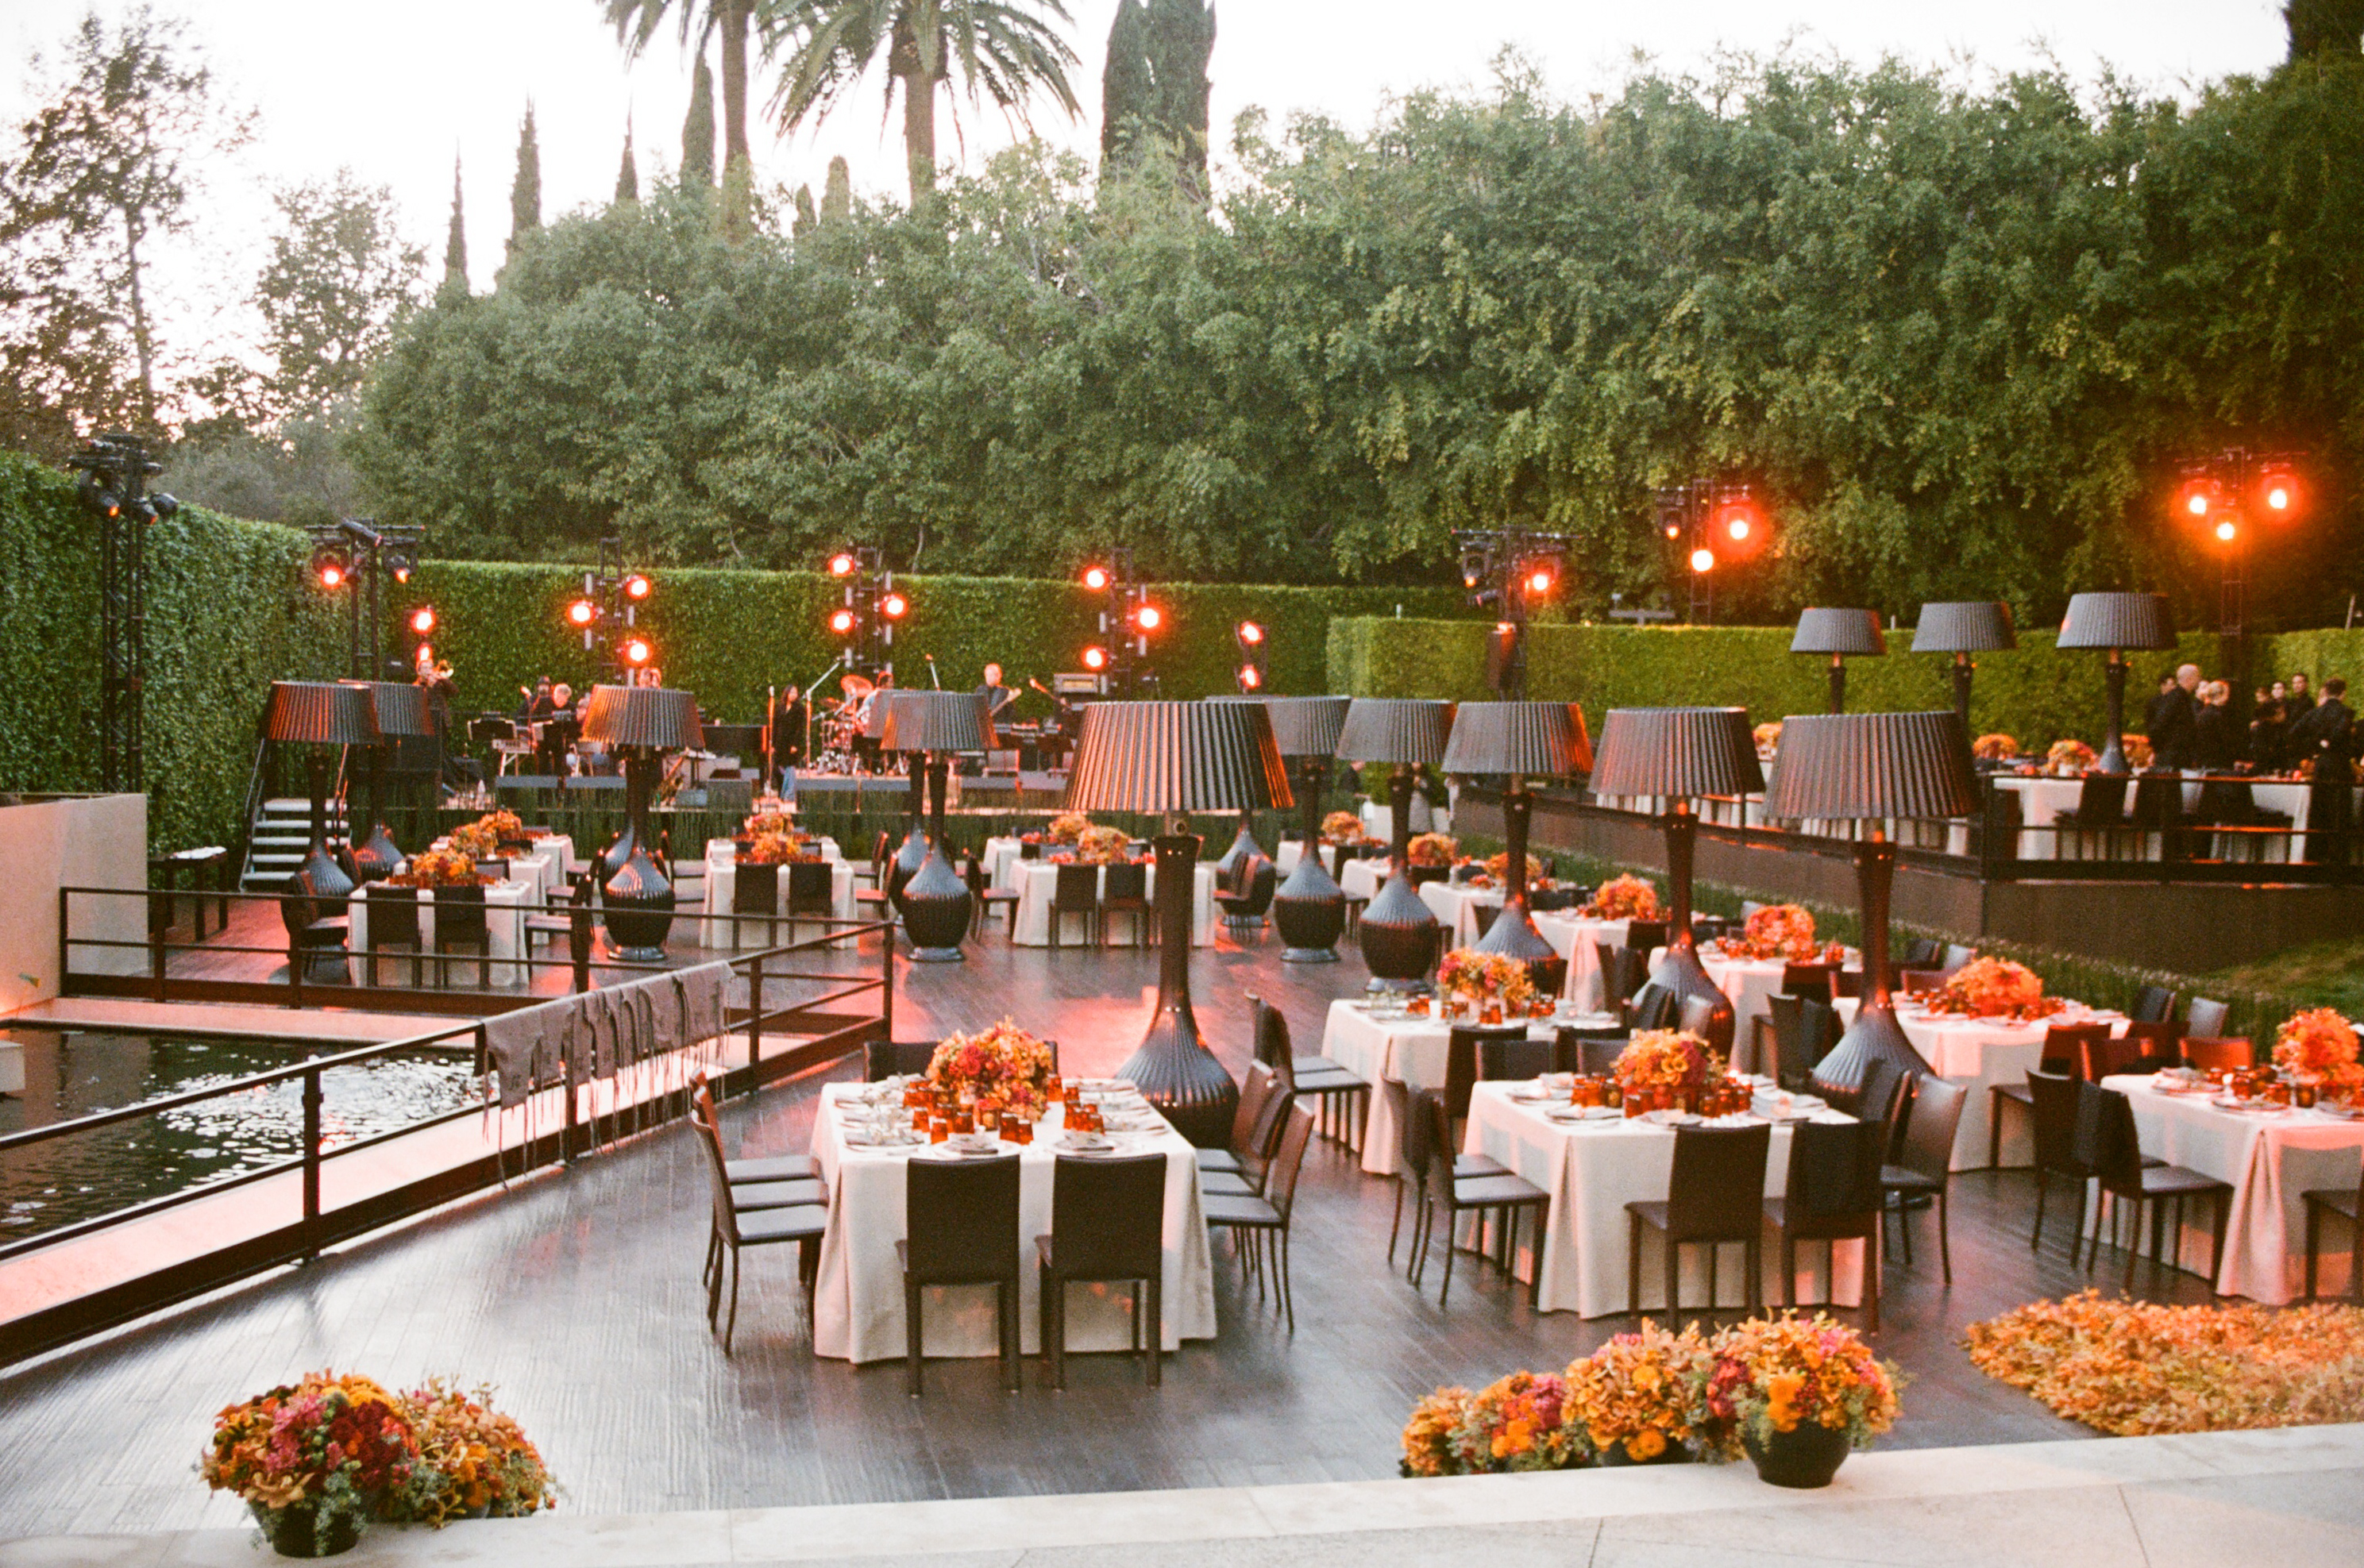 Milestone Birthday Celebration - Los Angeles - Paulette Wolf Events